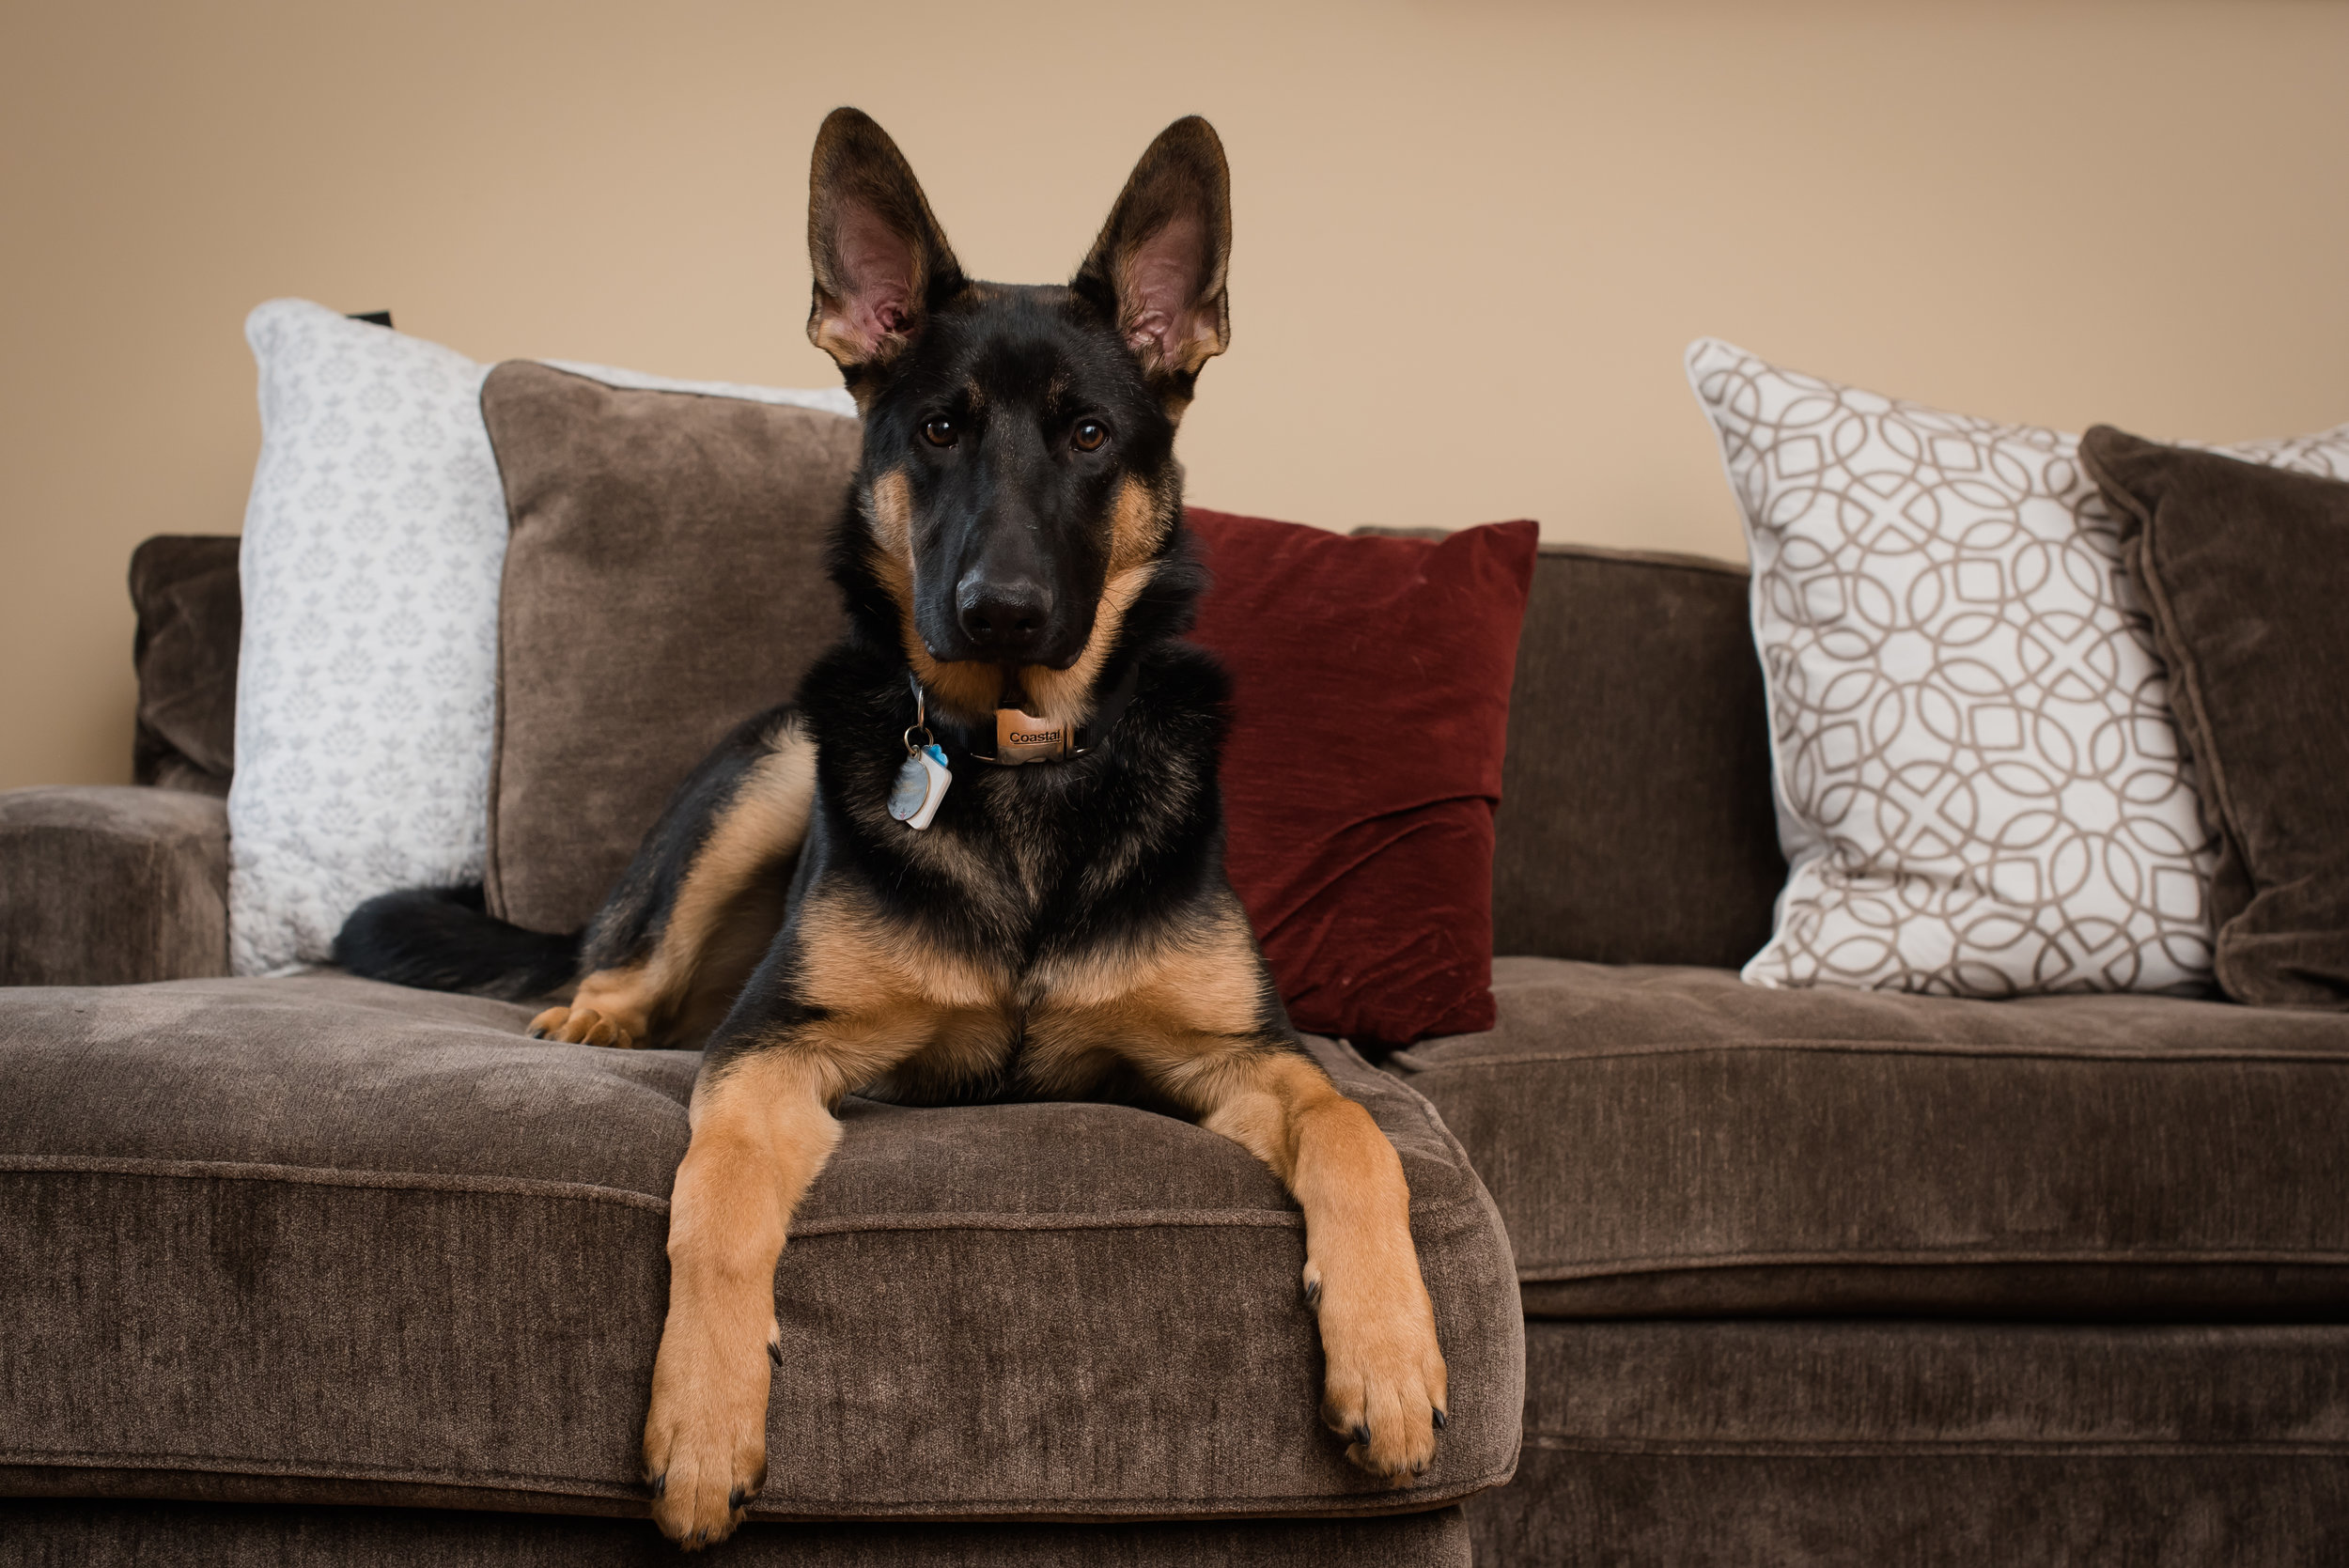 Pets - We all love our pets but sometimes buyers will be turned off if they see that the current owner has a dog or a catRemove all water bowls, liter boxes, animal beds, toys, etc.Make sure to have air fresheners in home to help combat any pet smells for showings